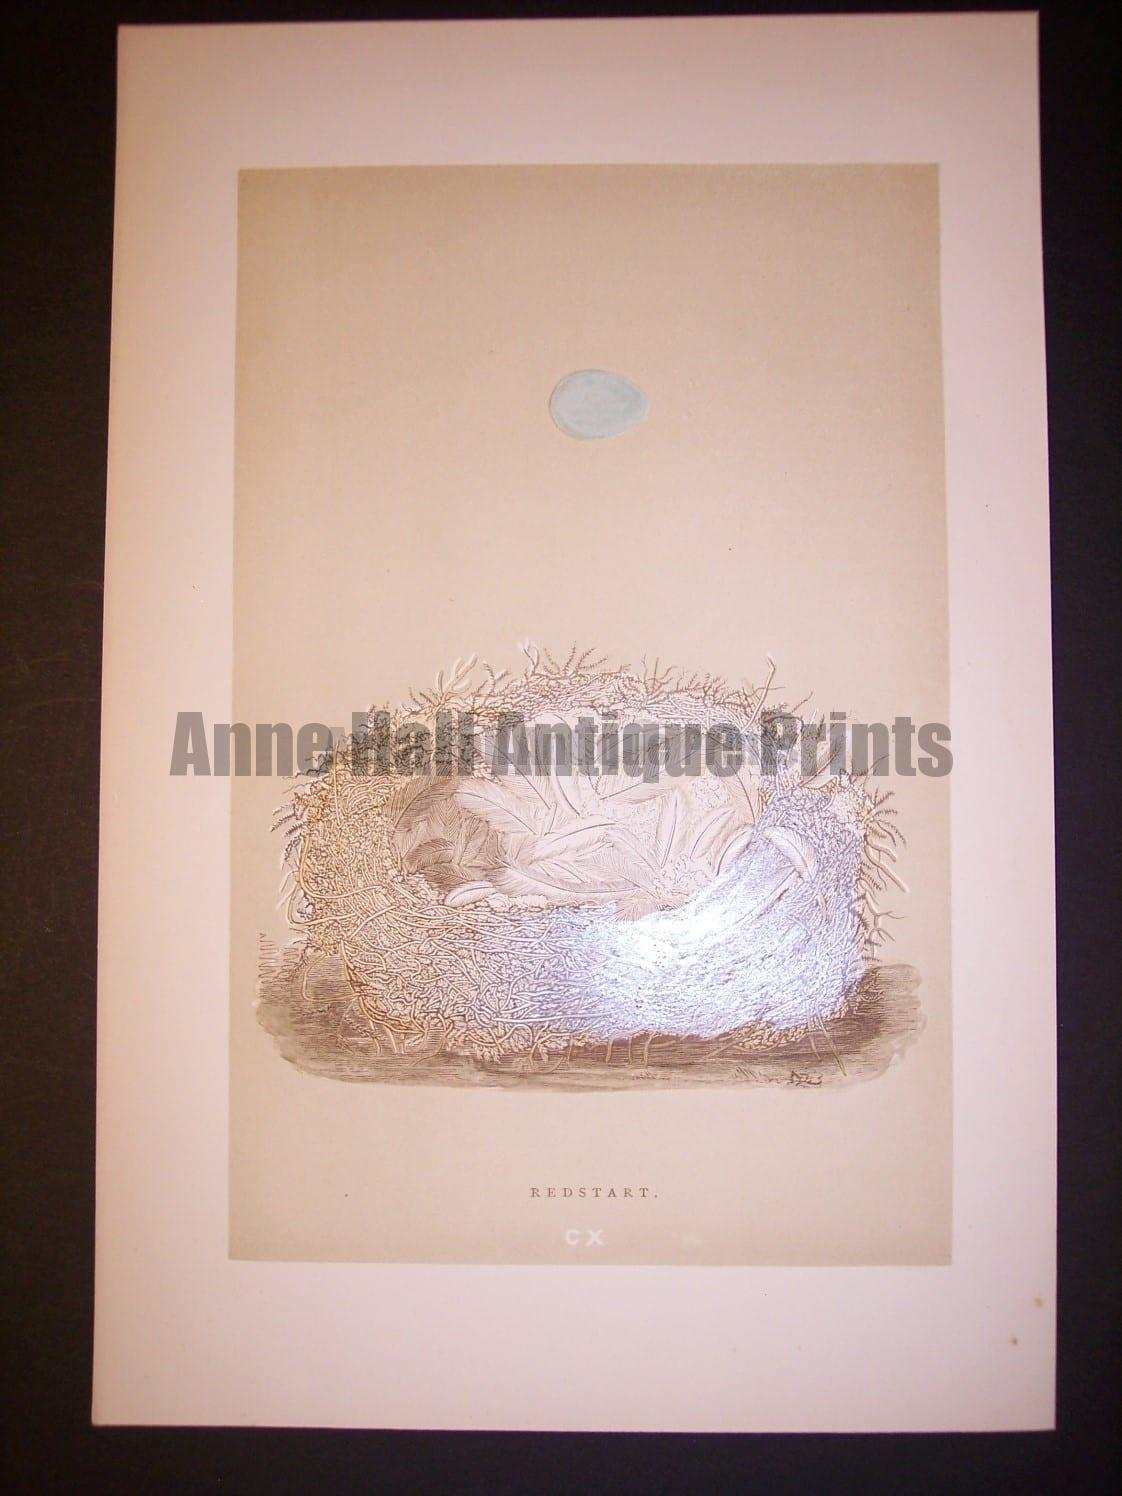 Reverend Morris Birds Nest Print  from 1890  #9966 Click here to buy now.